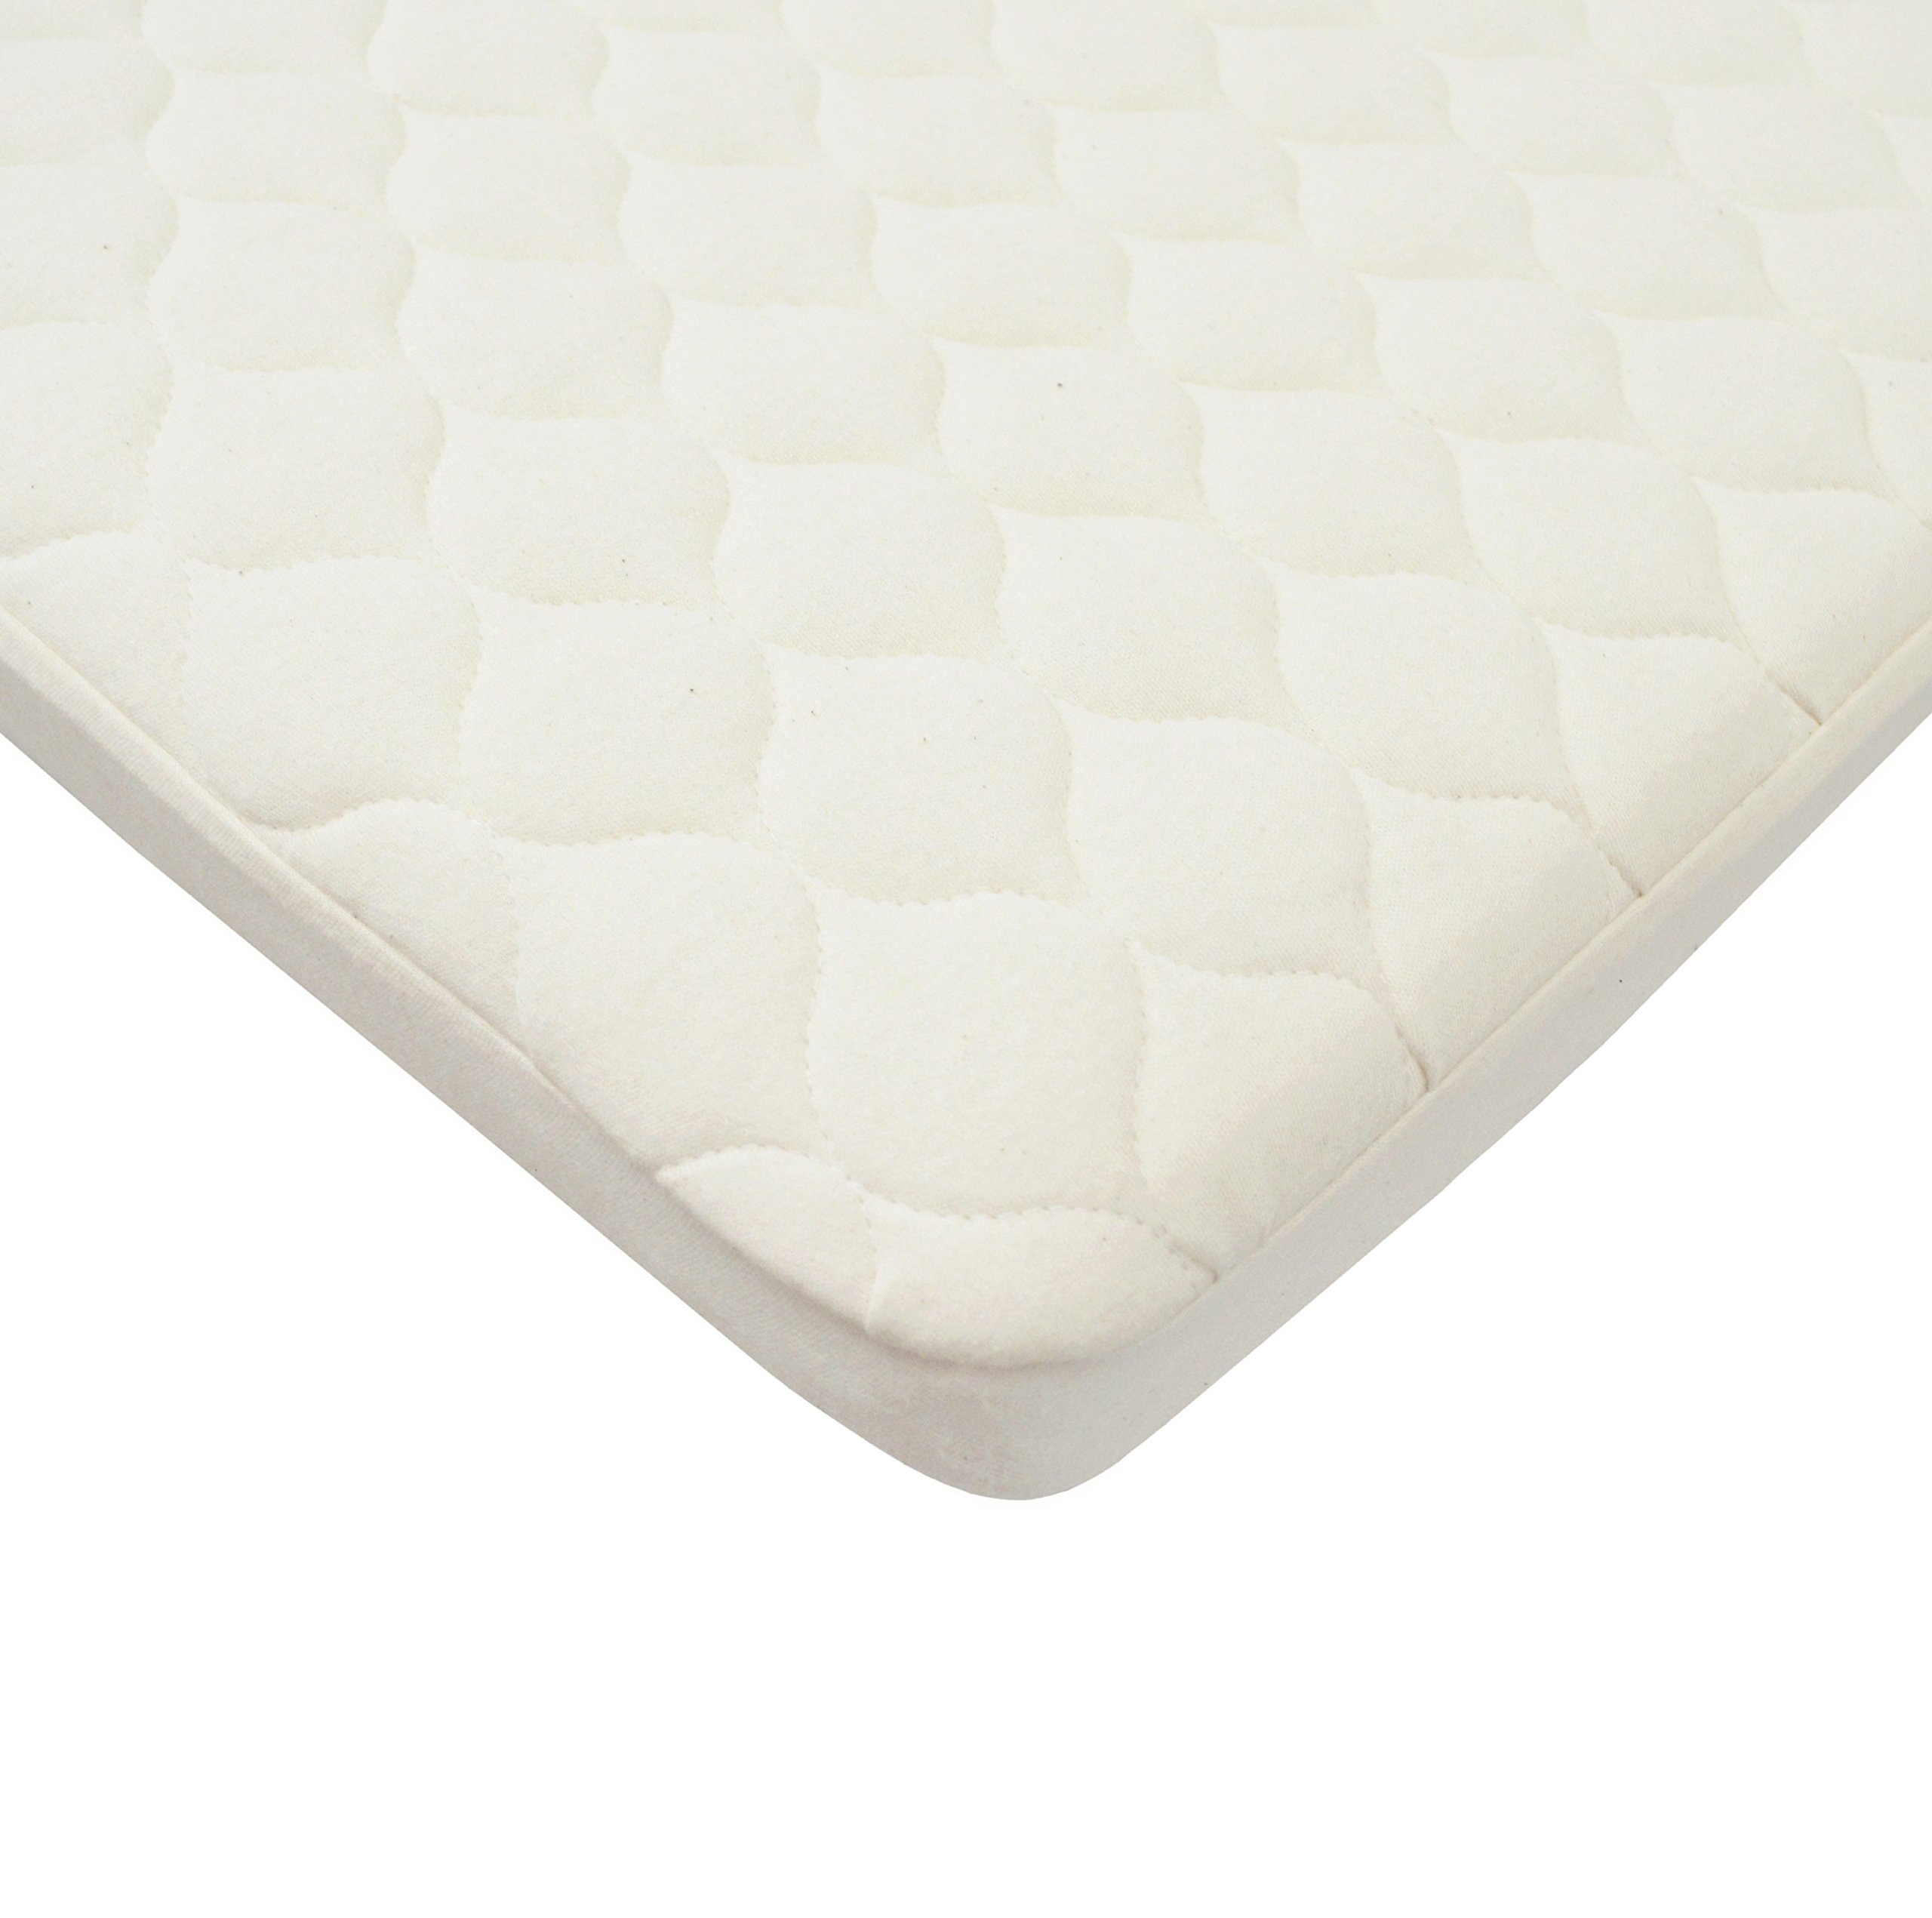 American Baby Company Waterproof Quilted Bassinet Mattress Pad Cover made with Organic Cotton, Natural Color - Vinyl Free